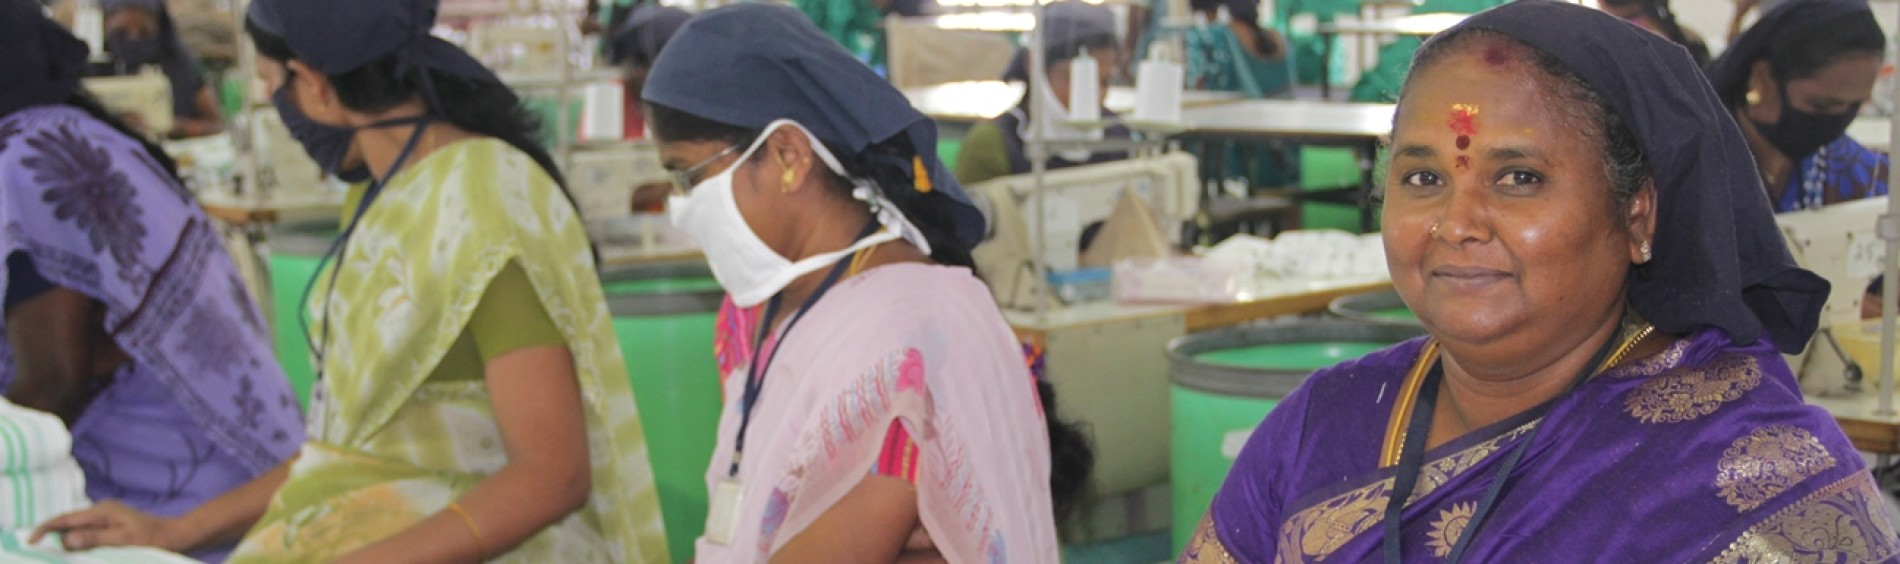 Bangladesh apparel with female workers